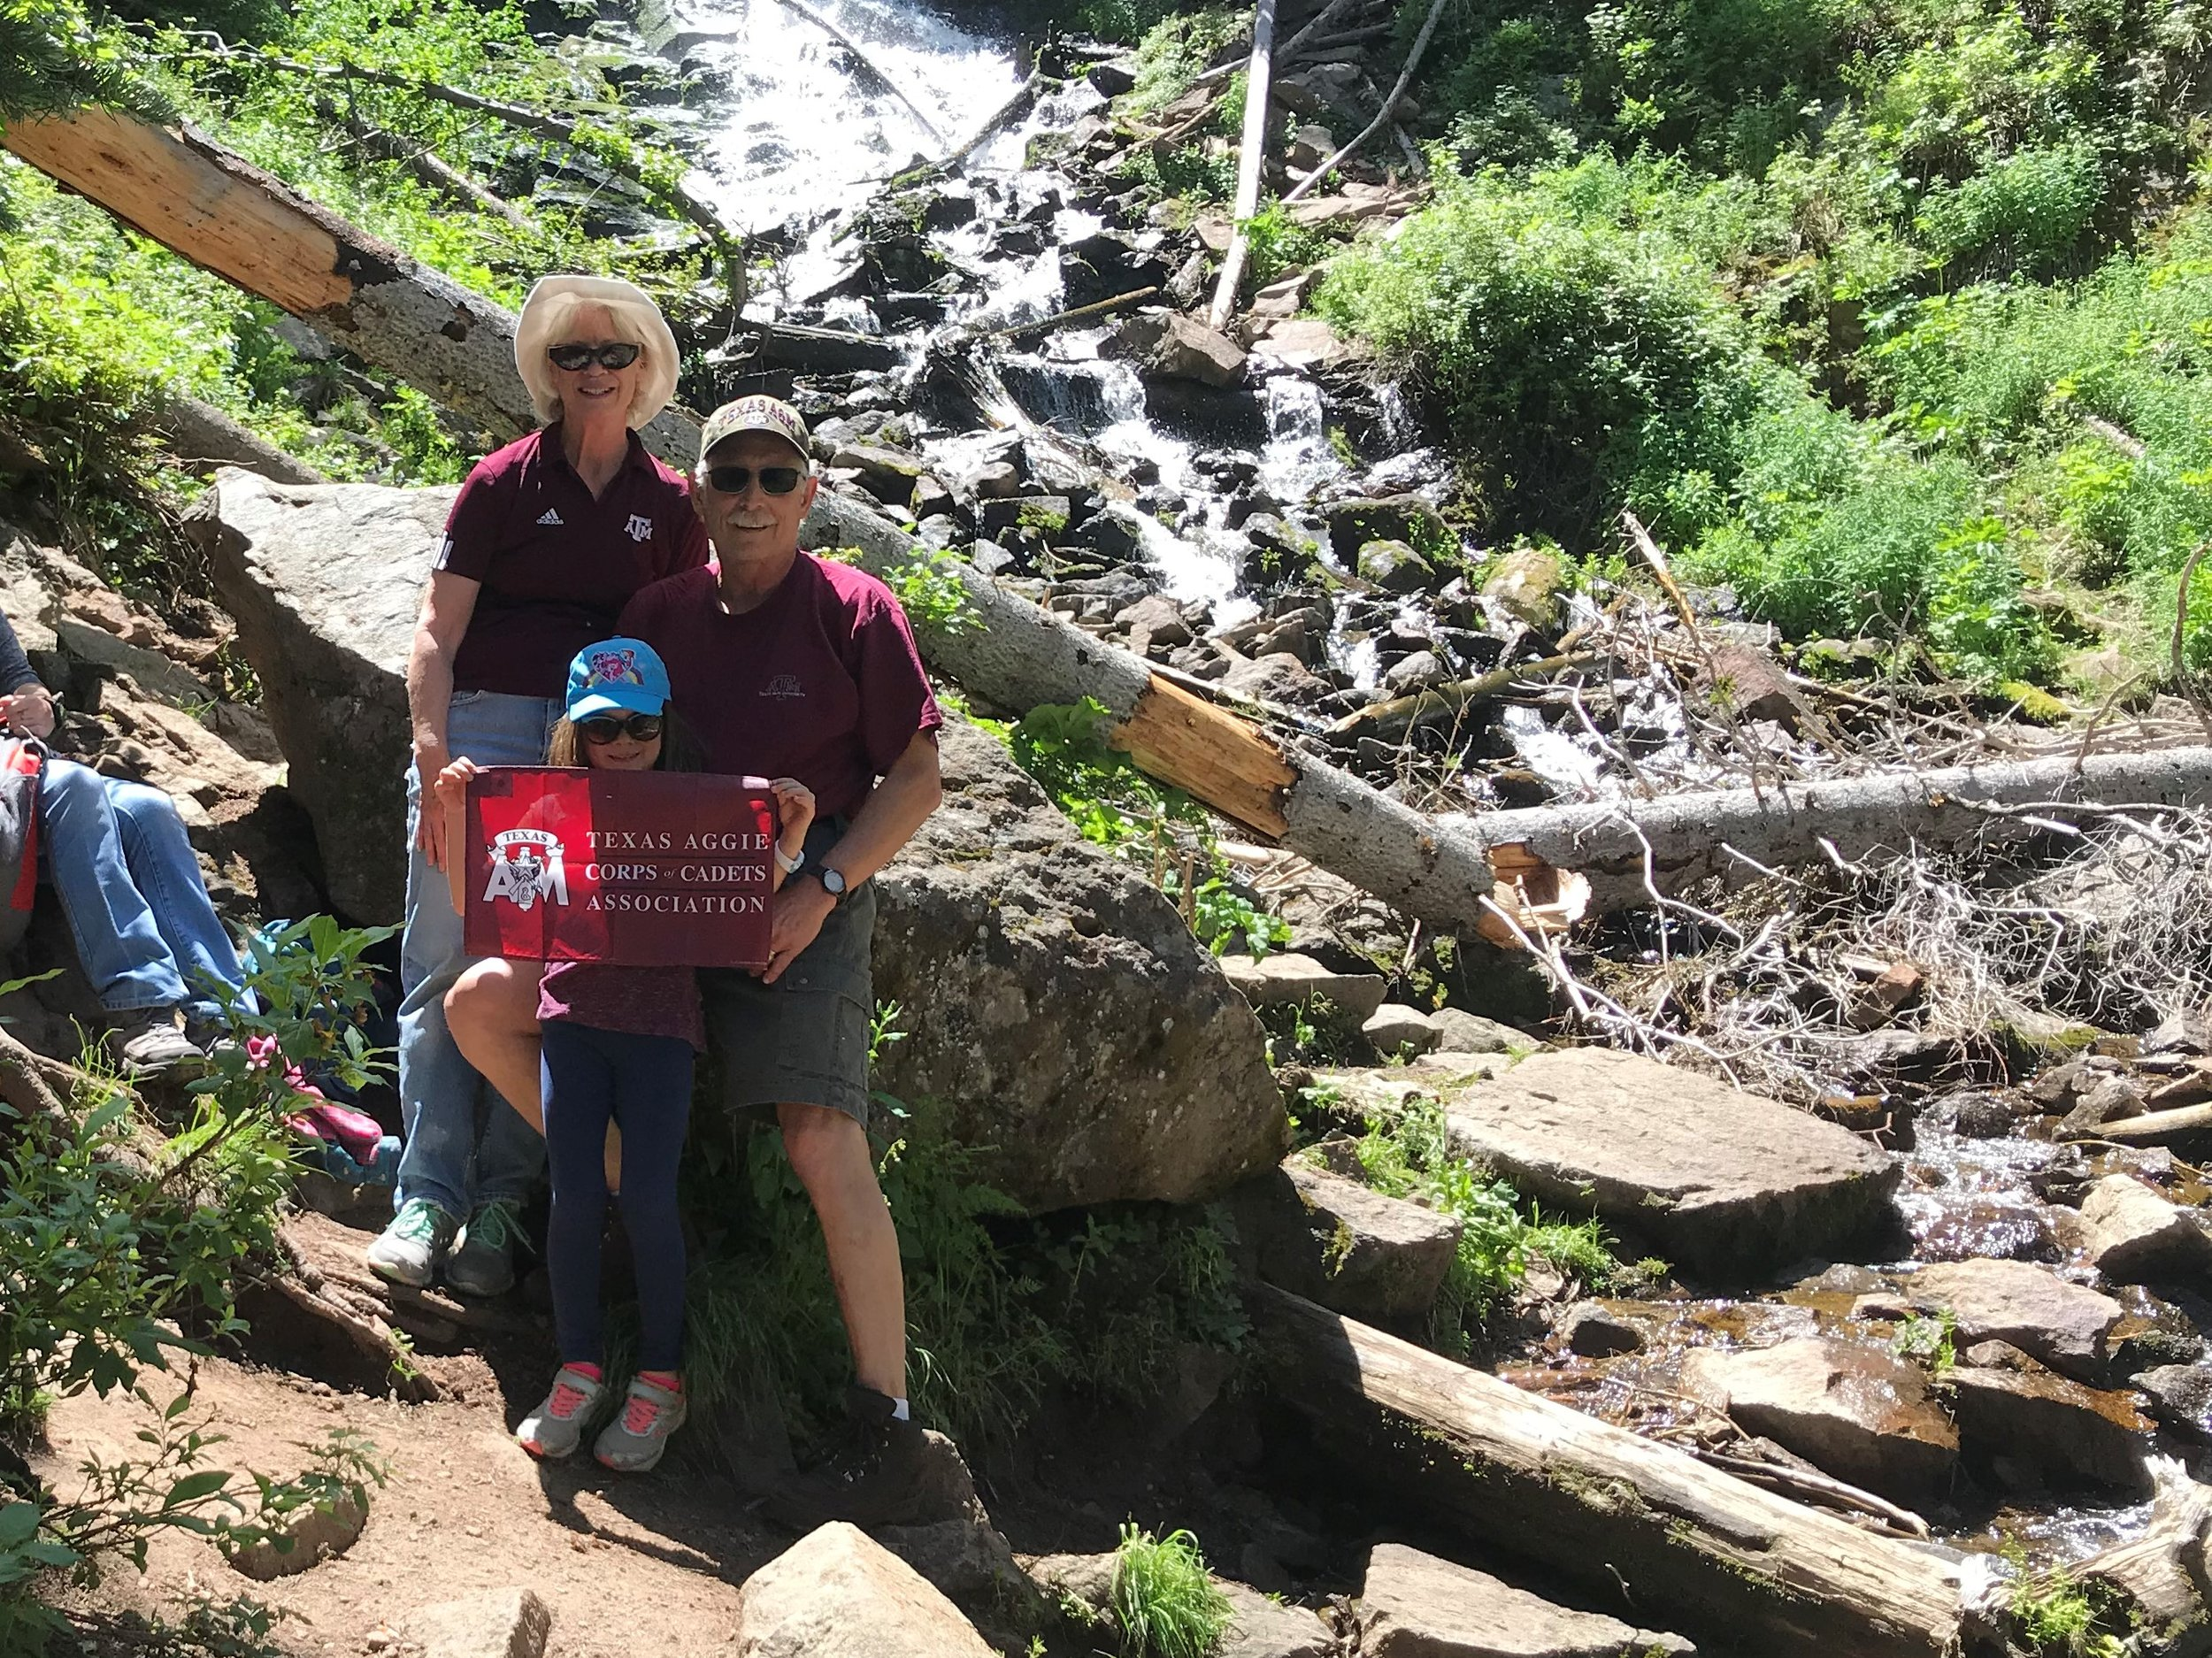 Jerry M. Easterly '73 with 'Nancy Easterly '74 and granddaughter Abigail Todd '35 at Cascade Falls above Big Meadow Reservoir near South Fork Colorado, July 2019.jpg